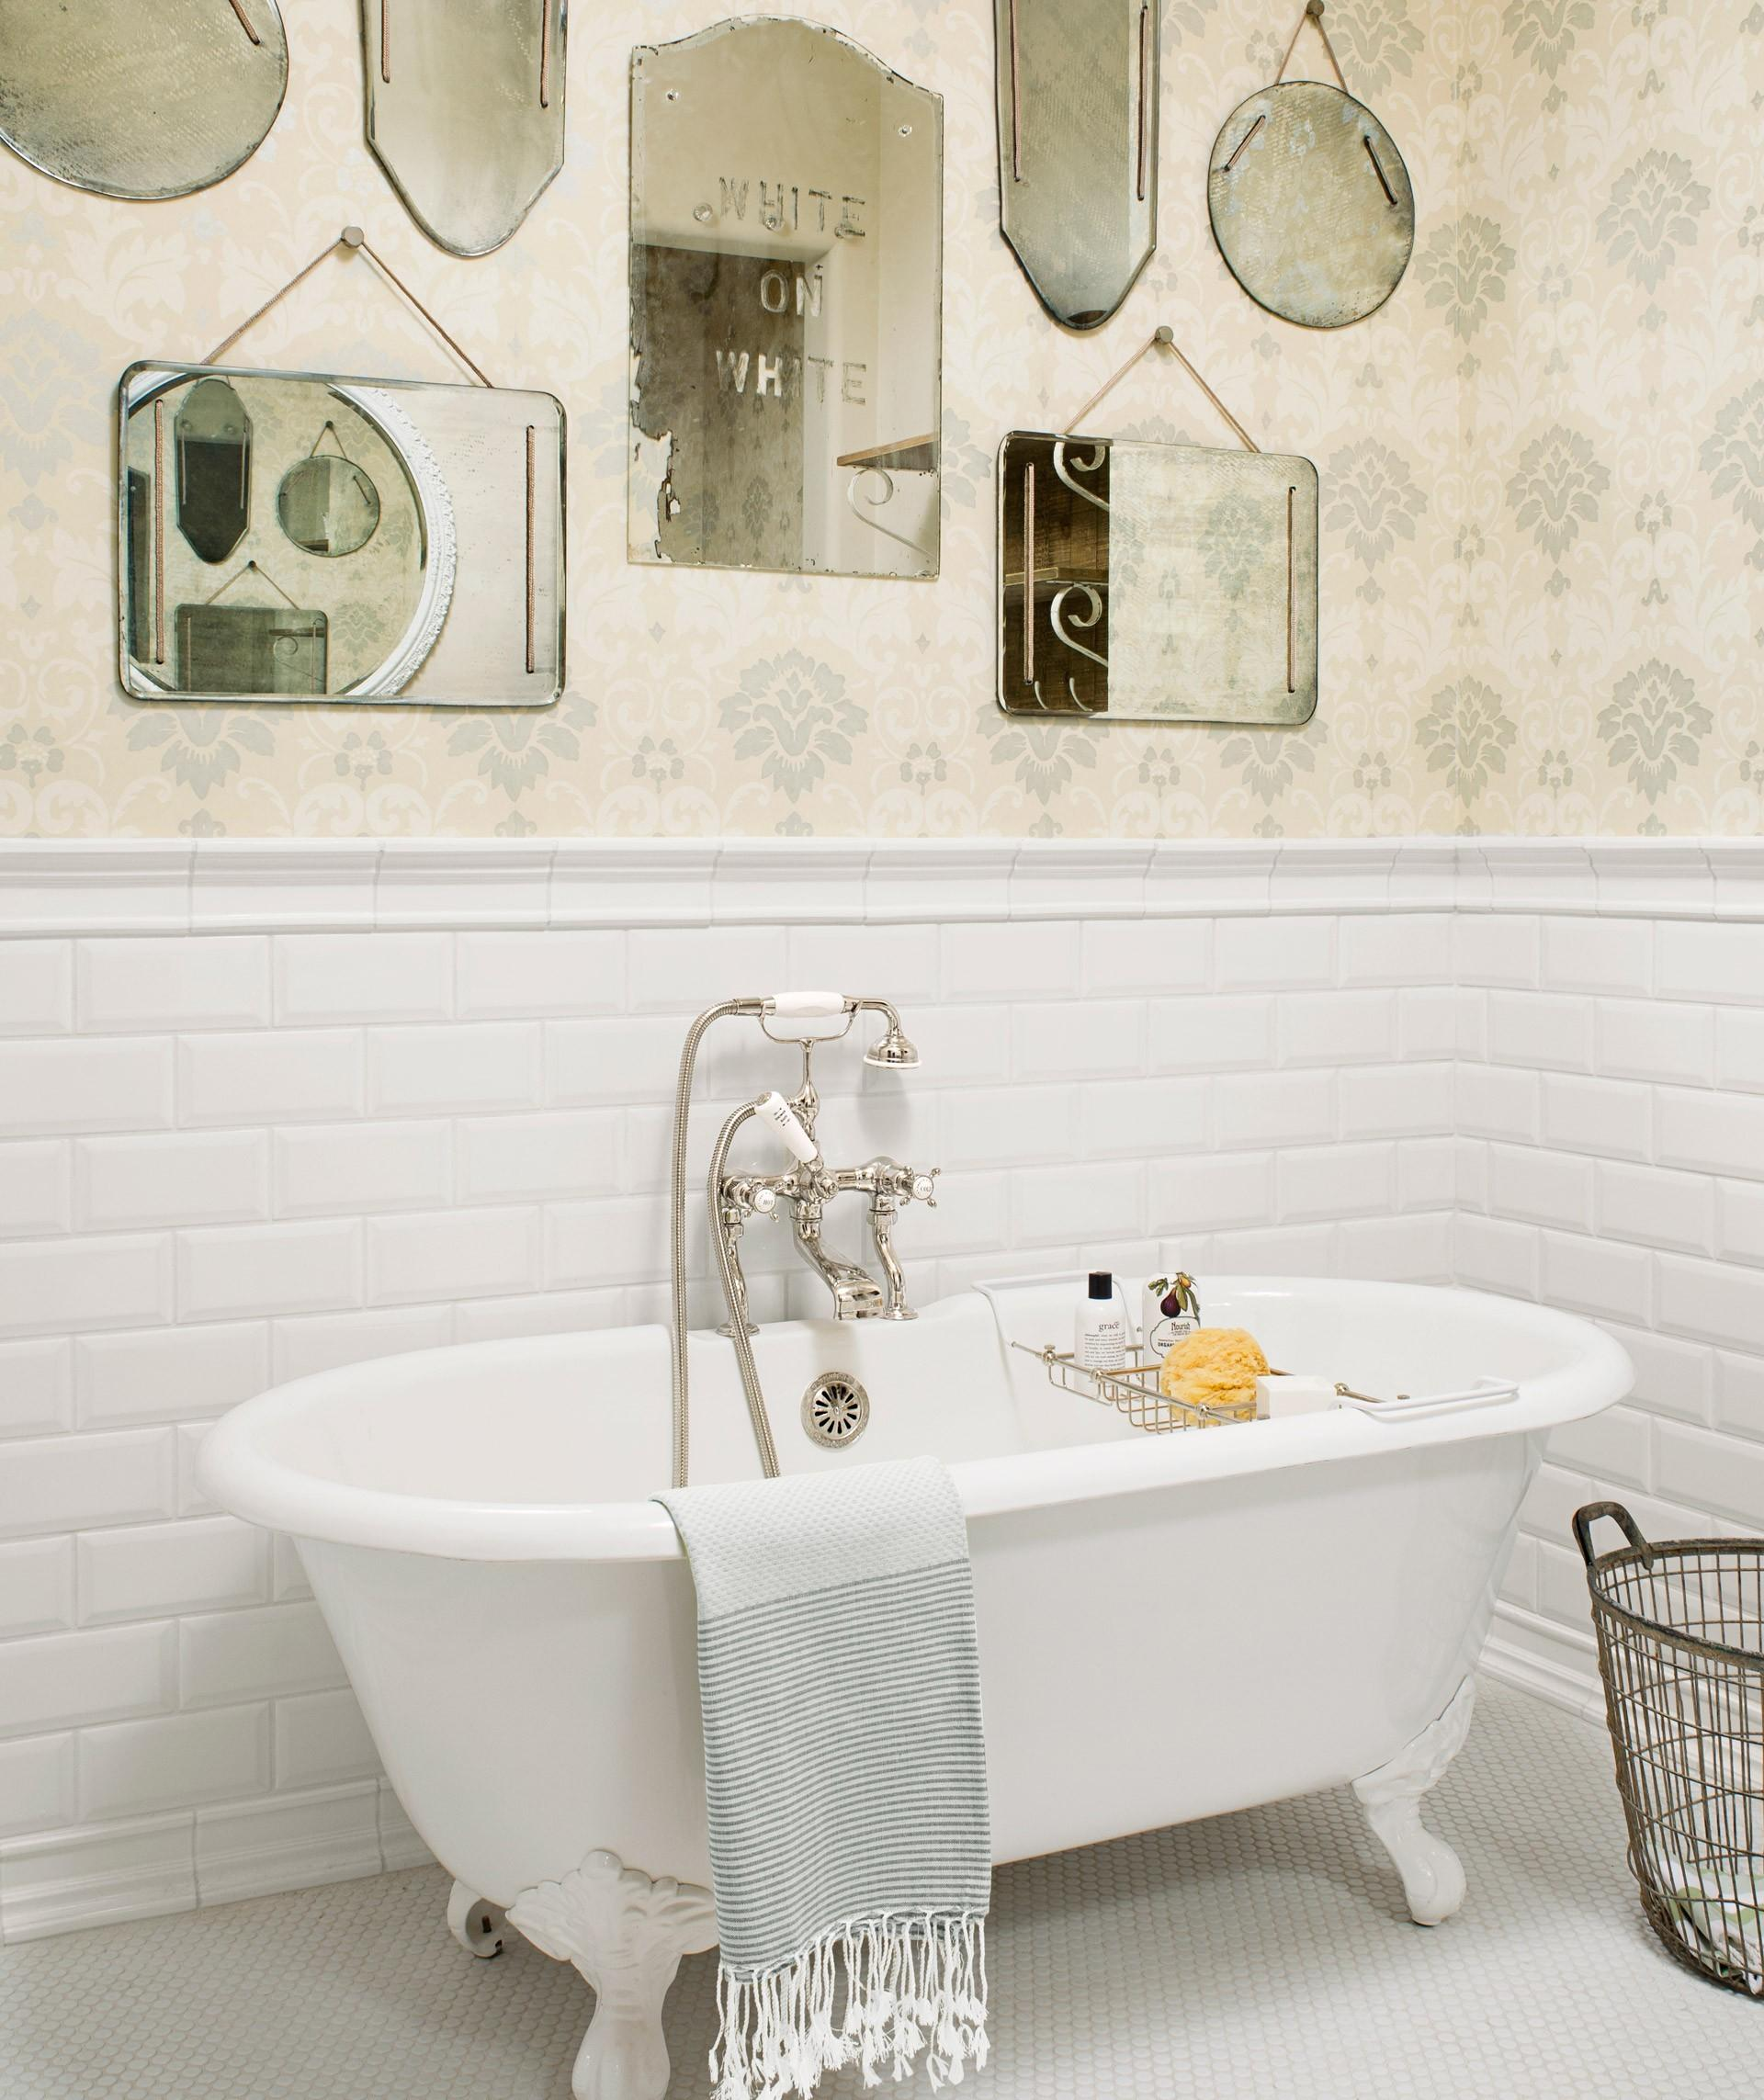 Awesome Vintage Bathroom Accessories Photograpy